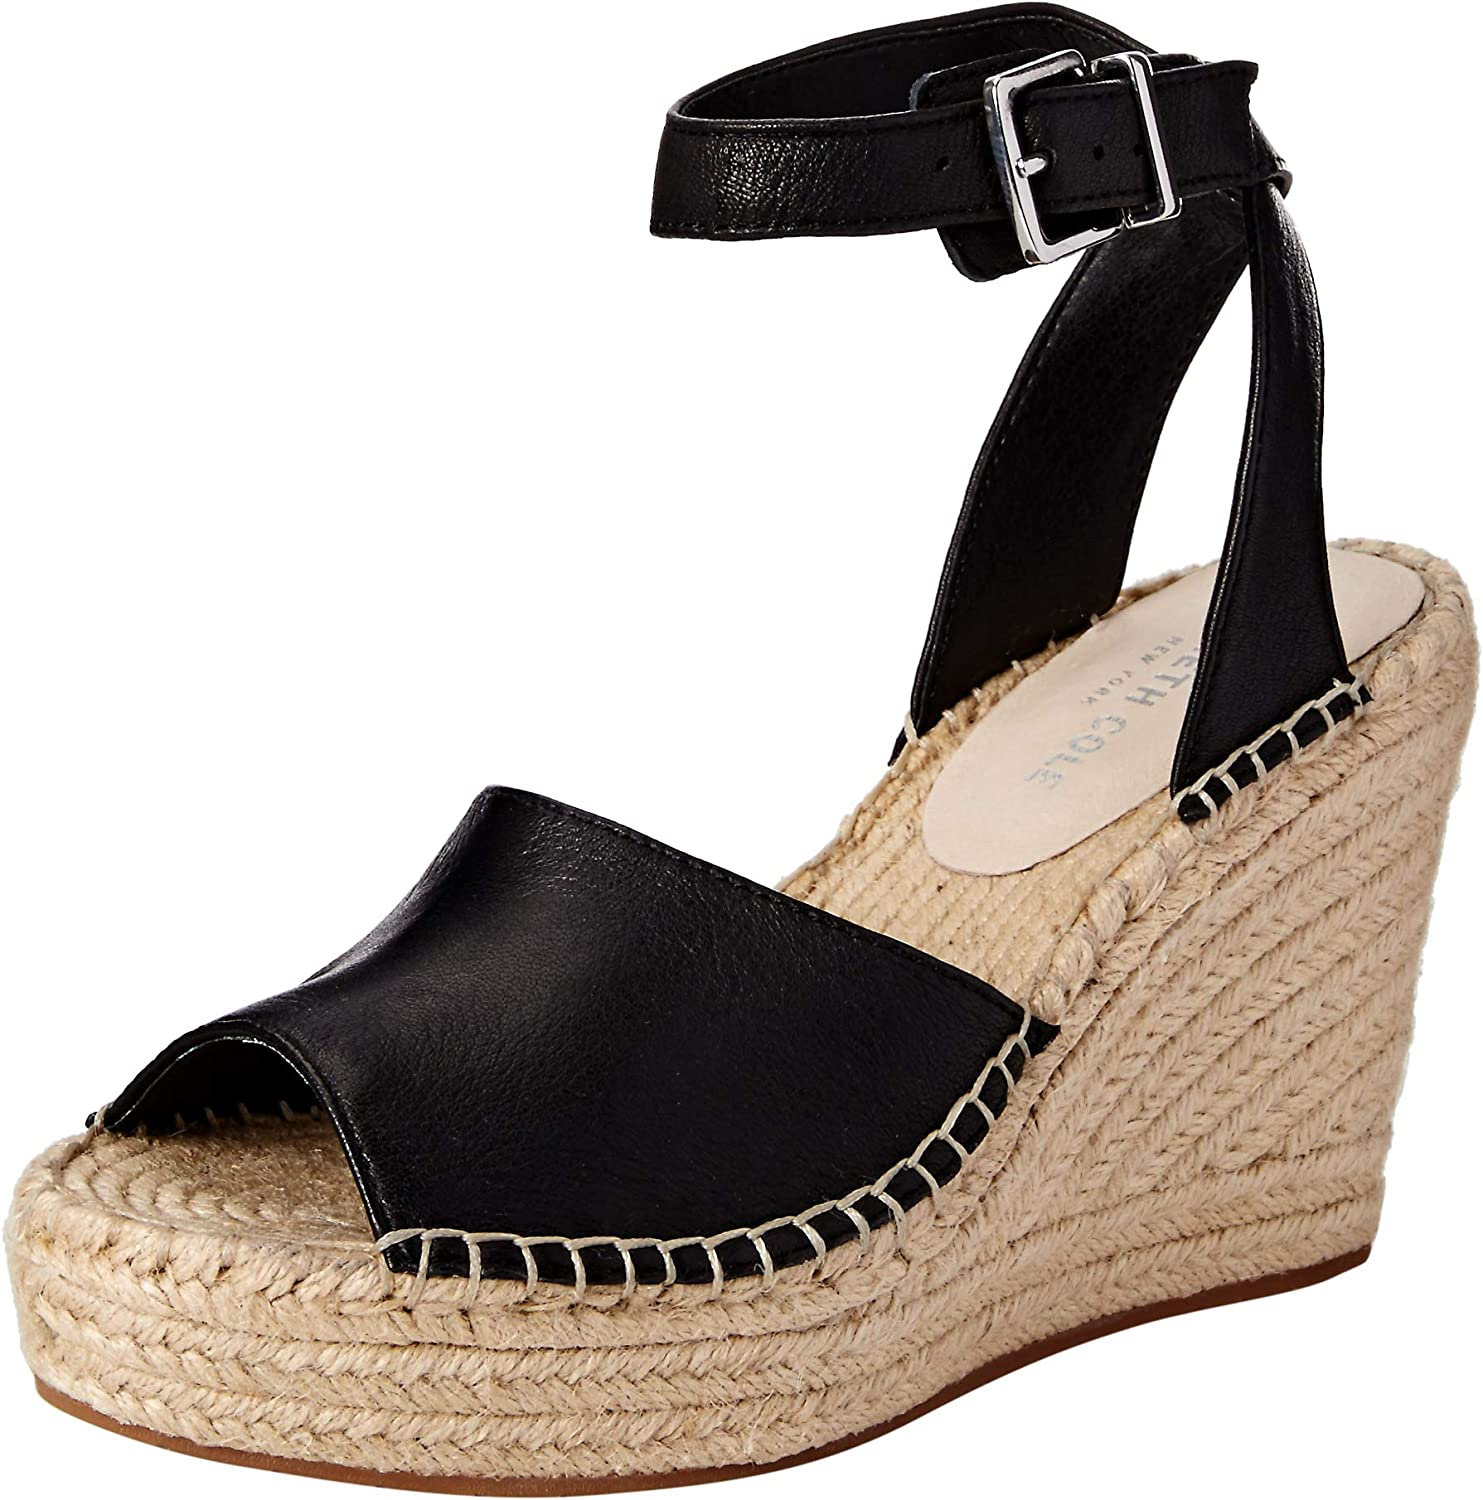 Kenneth Cole New York Womens Olivia Two Piece Espadrille Wedge Sandal Espadrille Wedge Sandal